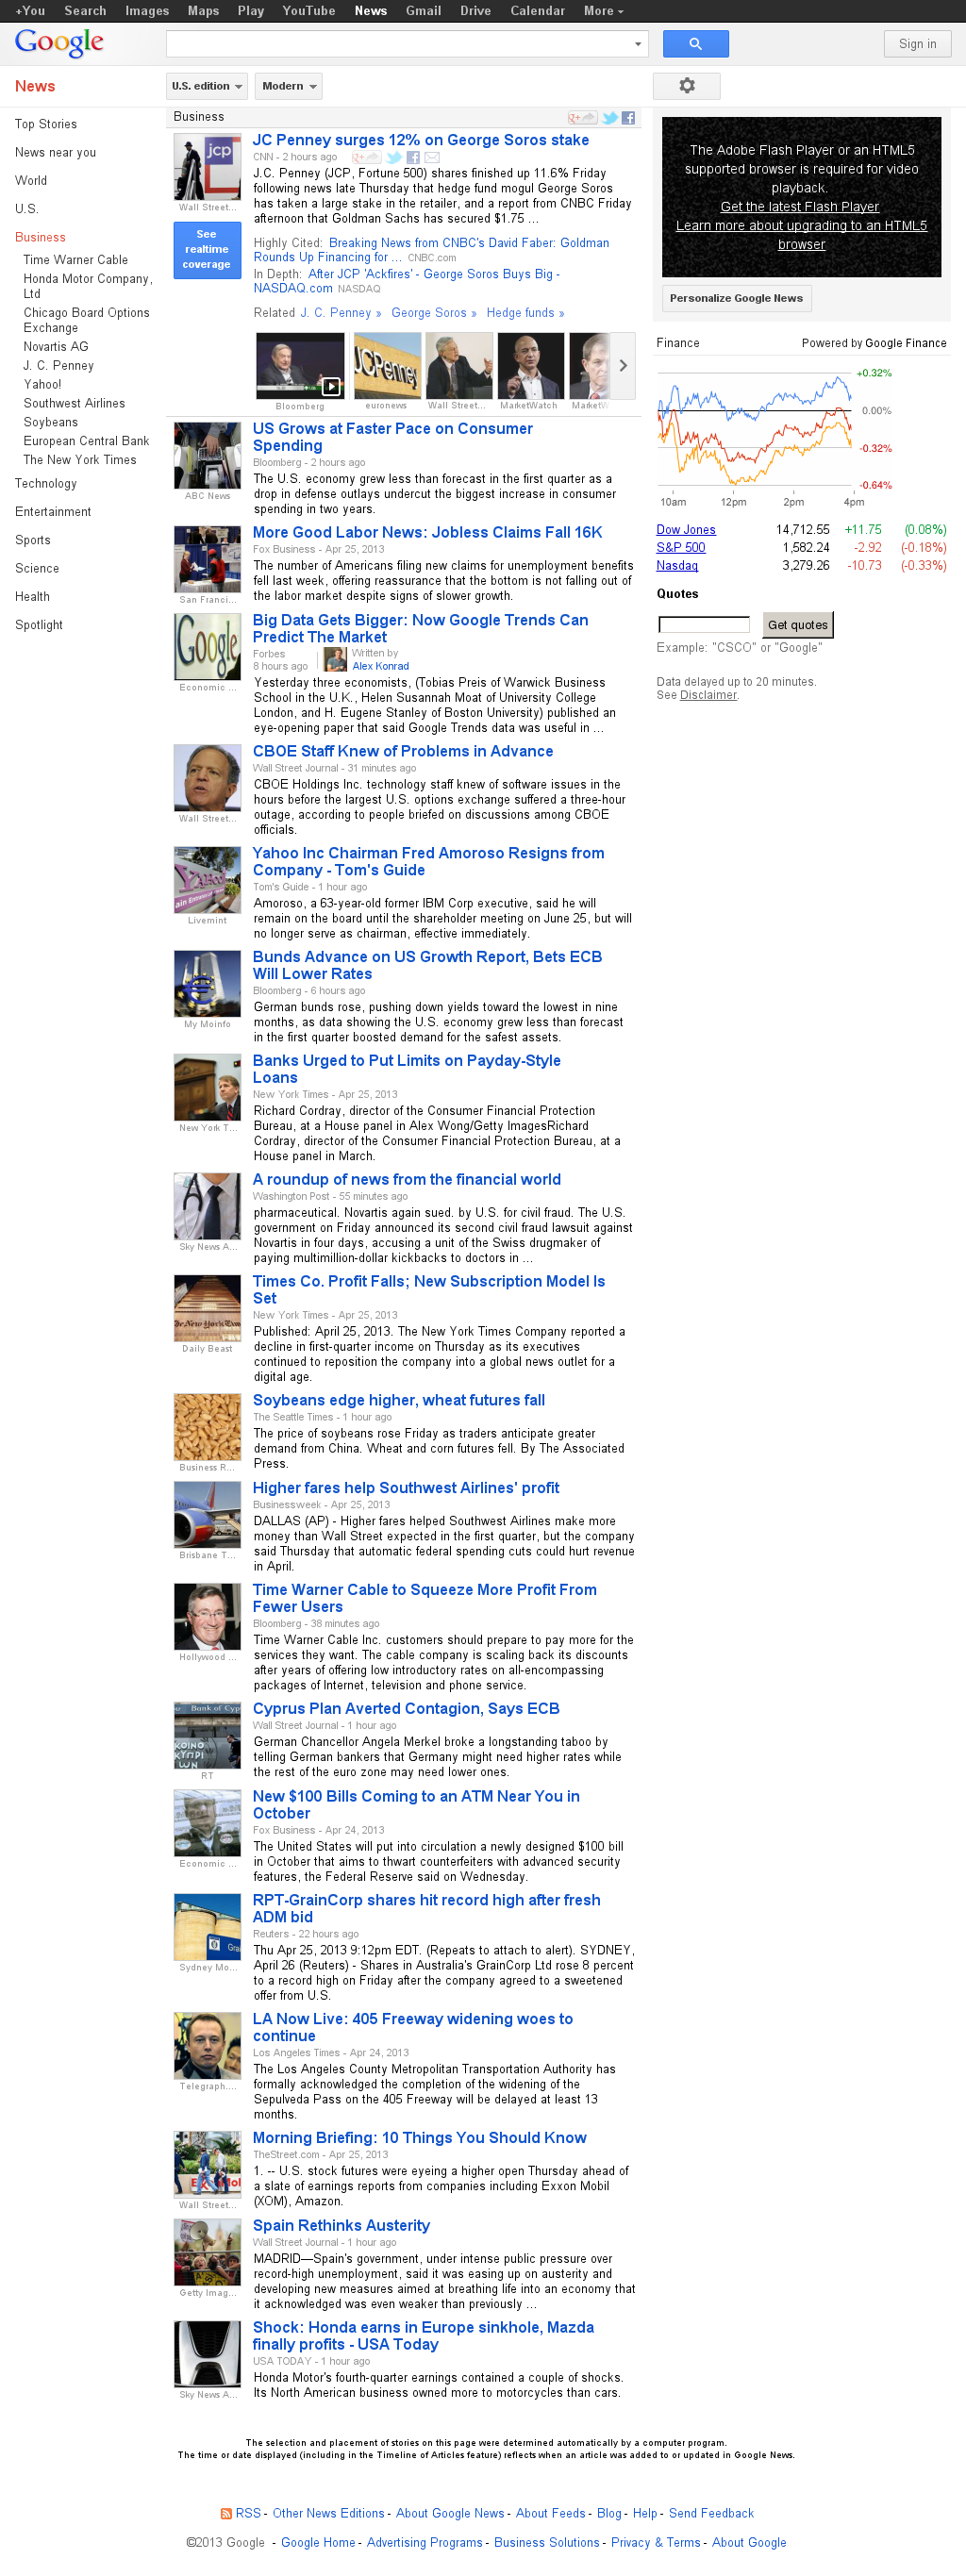 Google News: Business at Saturday April 27, 2013, 12:07 a.m. UTC